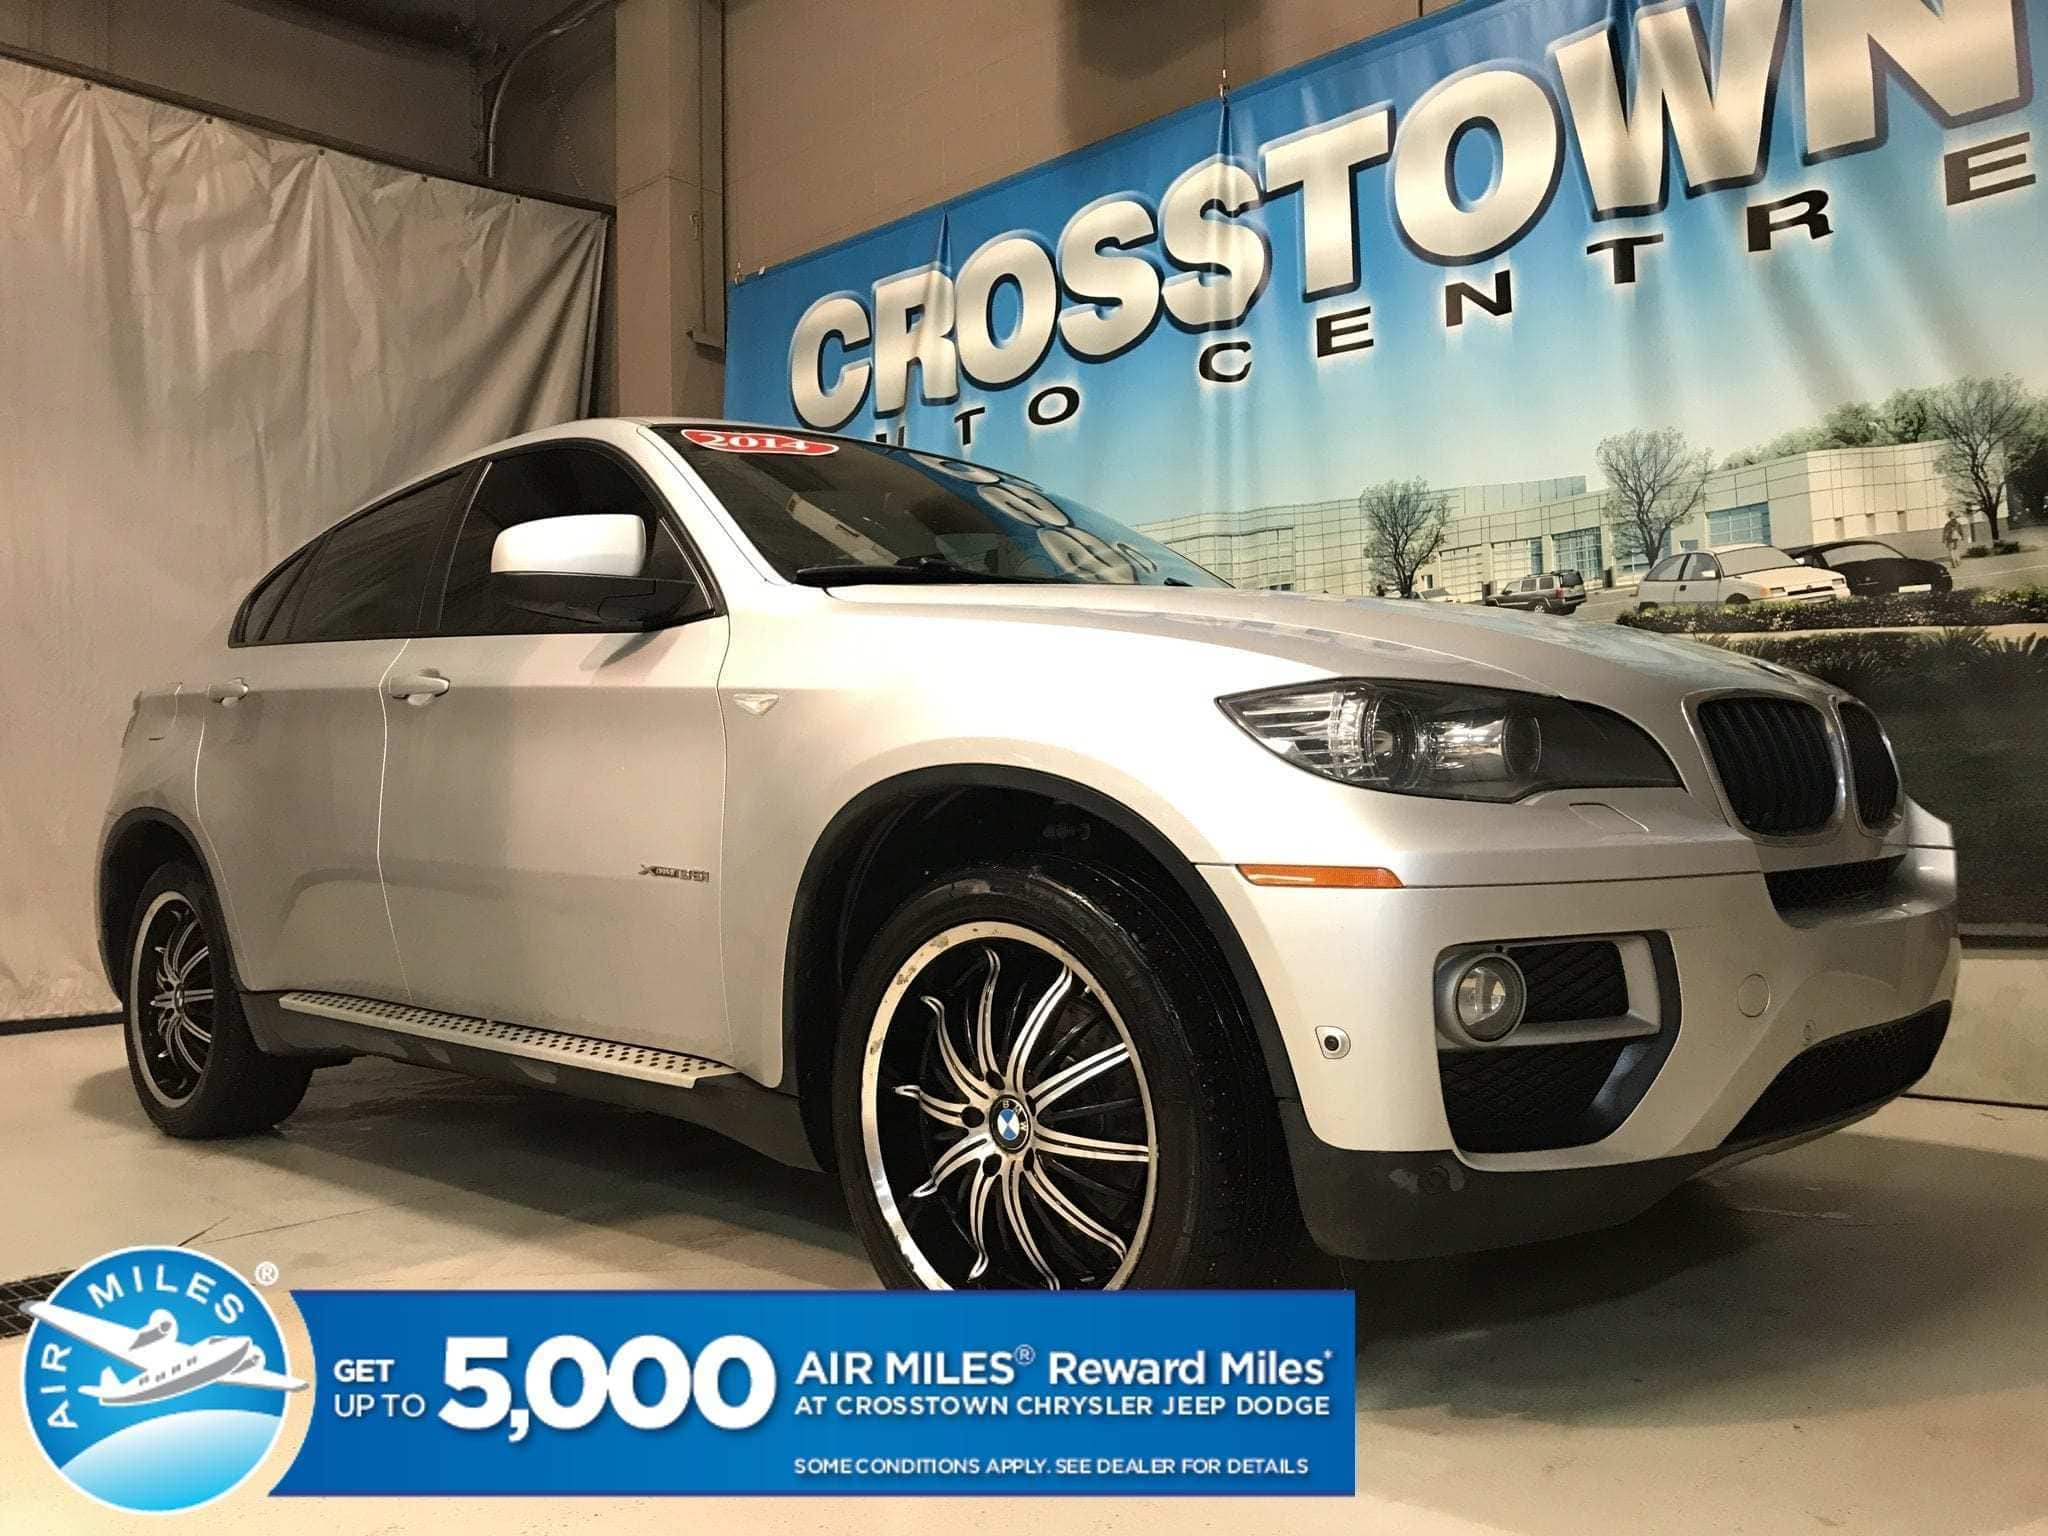 Used Car Sale Sites Awesome Used Cars for Sale Car Dealership In Edmonton Ab